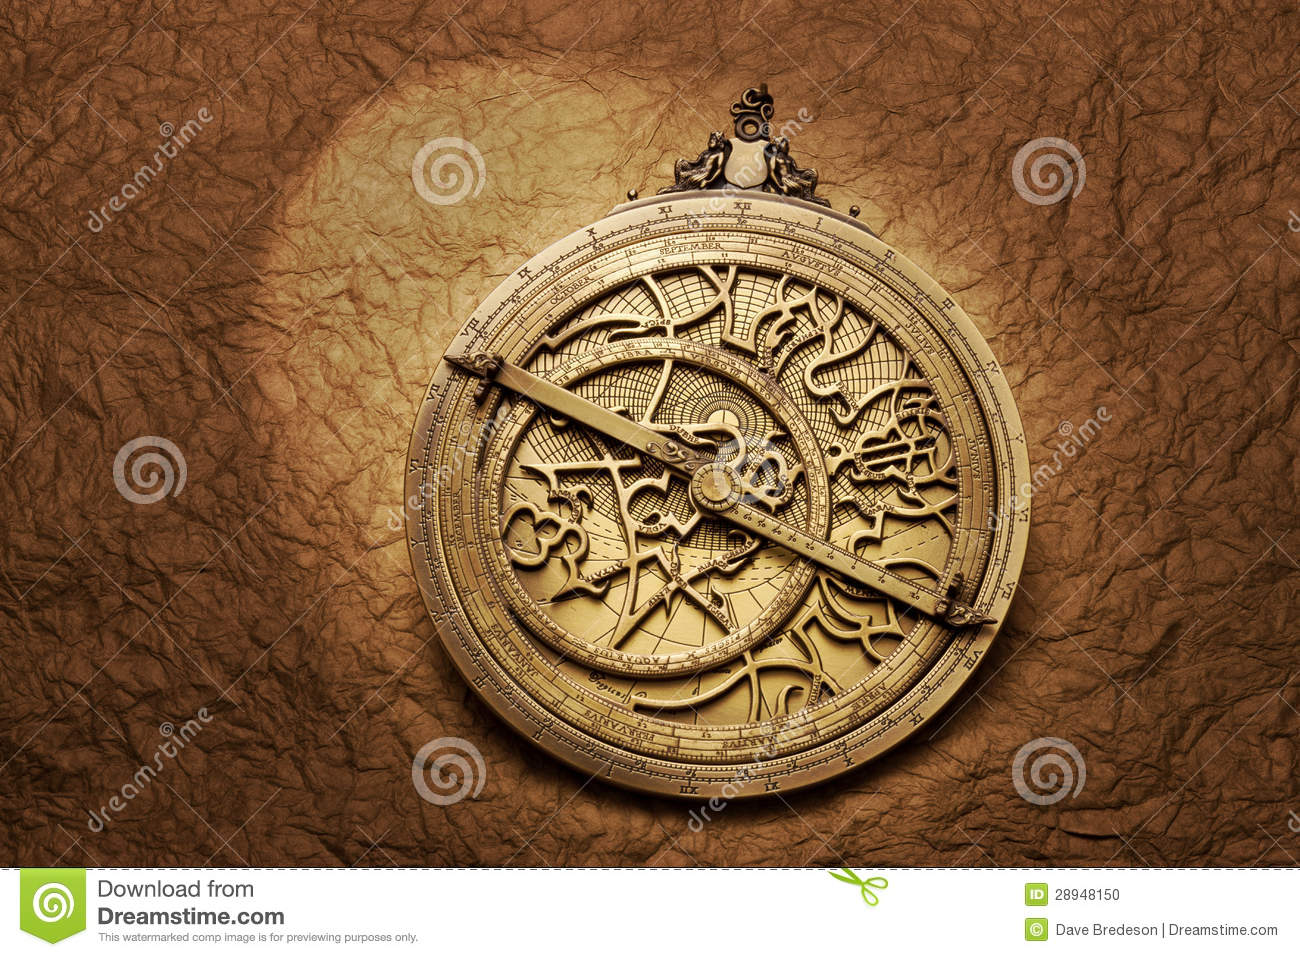 Astrolabe astrology horoscope stock photo image 28948150 astrolabe astrology horoscope nvjuhfo Image collections